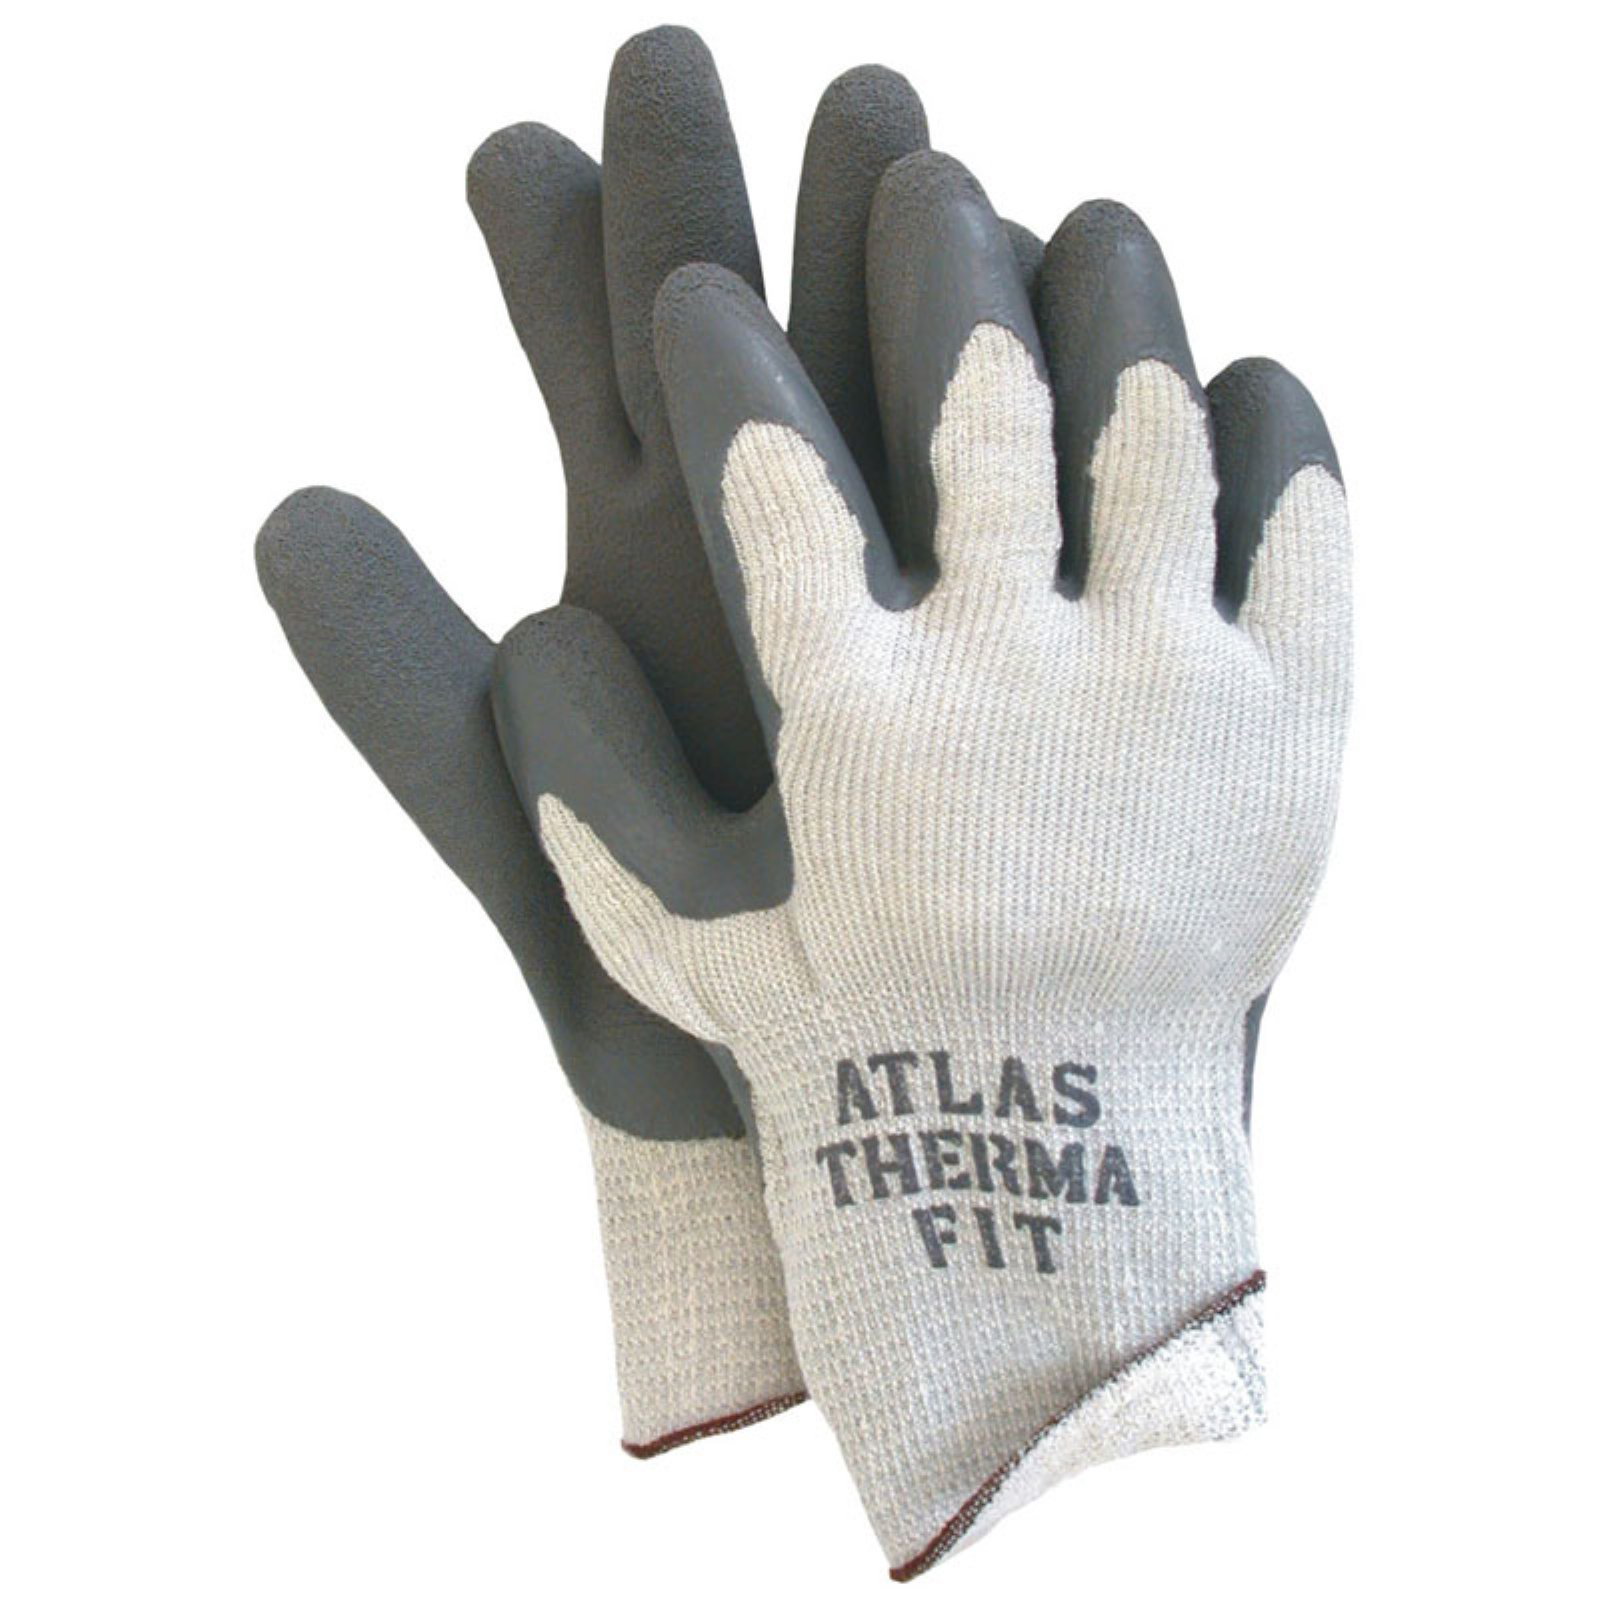 Product Image Atlas Glove 8430L Large Atlas Therma Fit Gloves